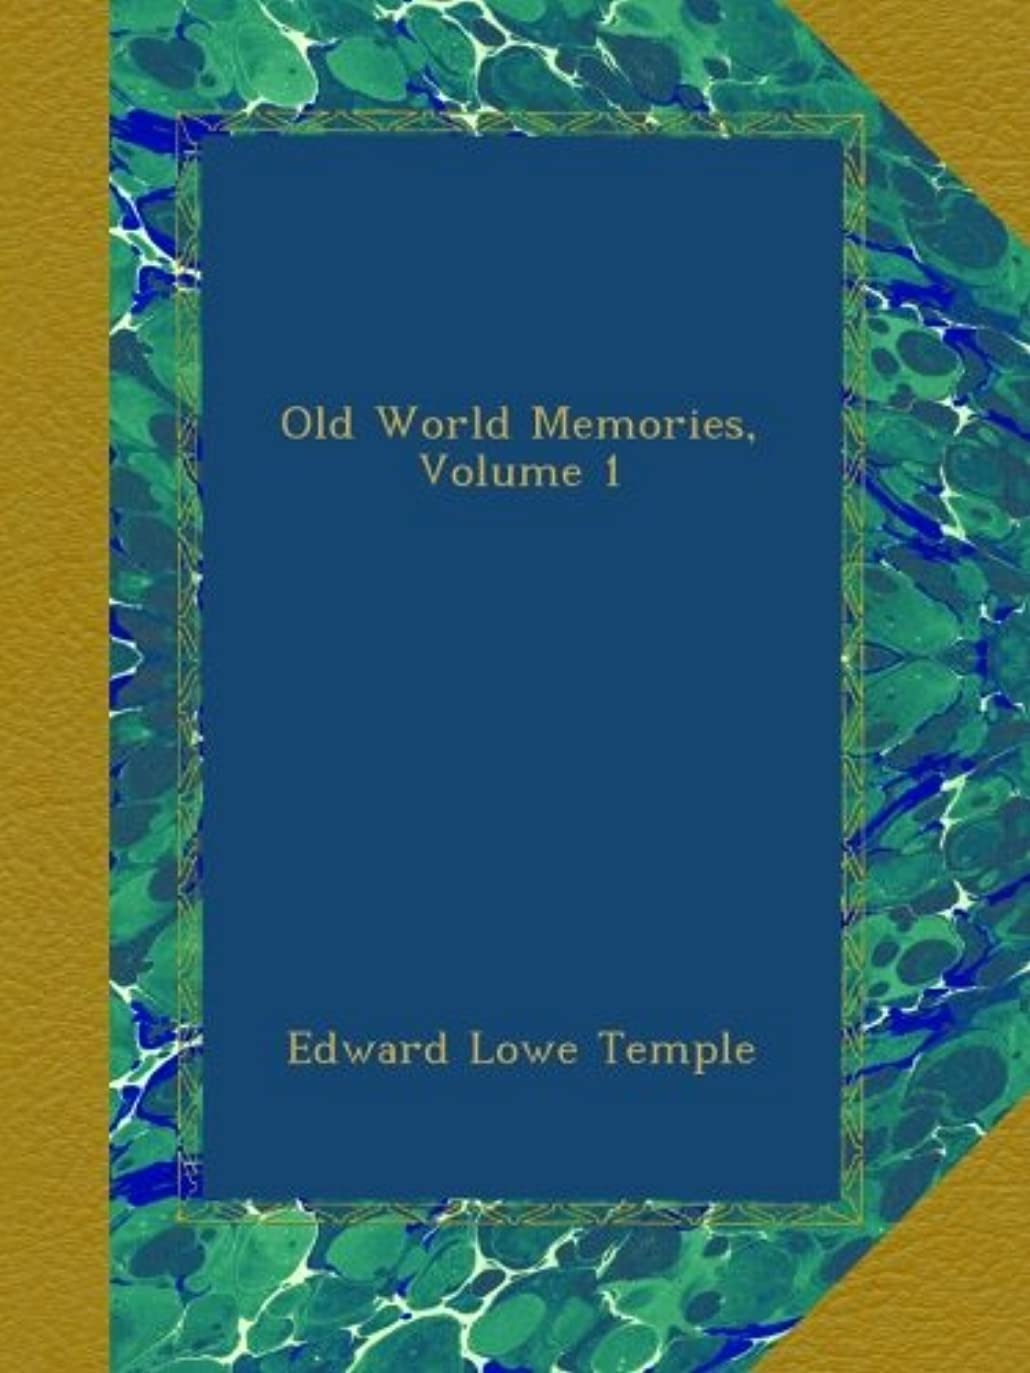 Old World Memories, Volume 1